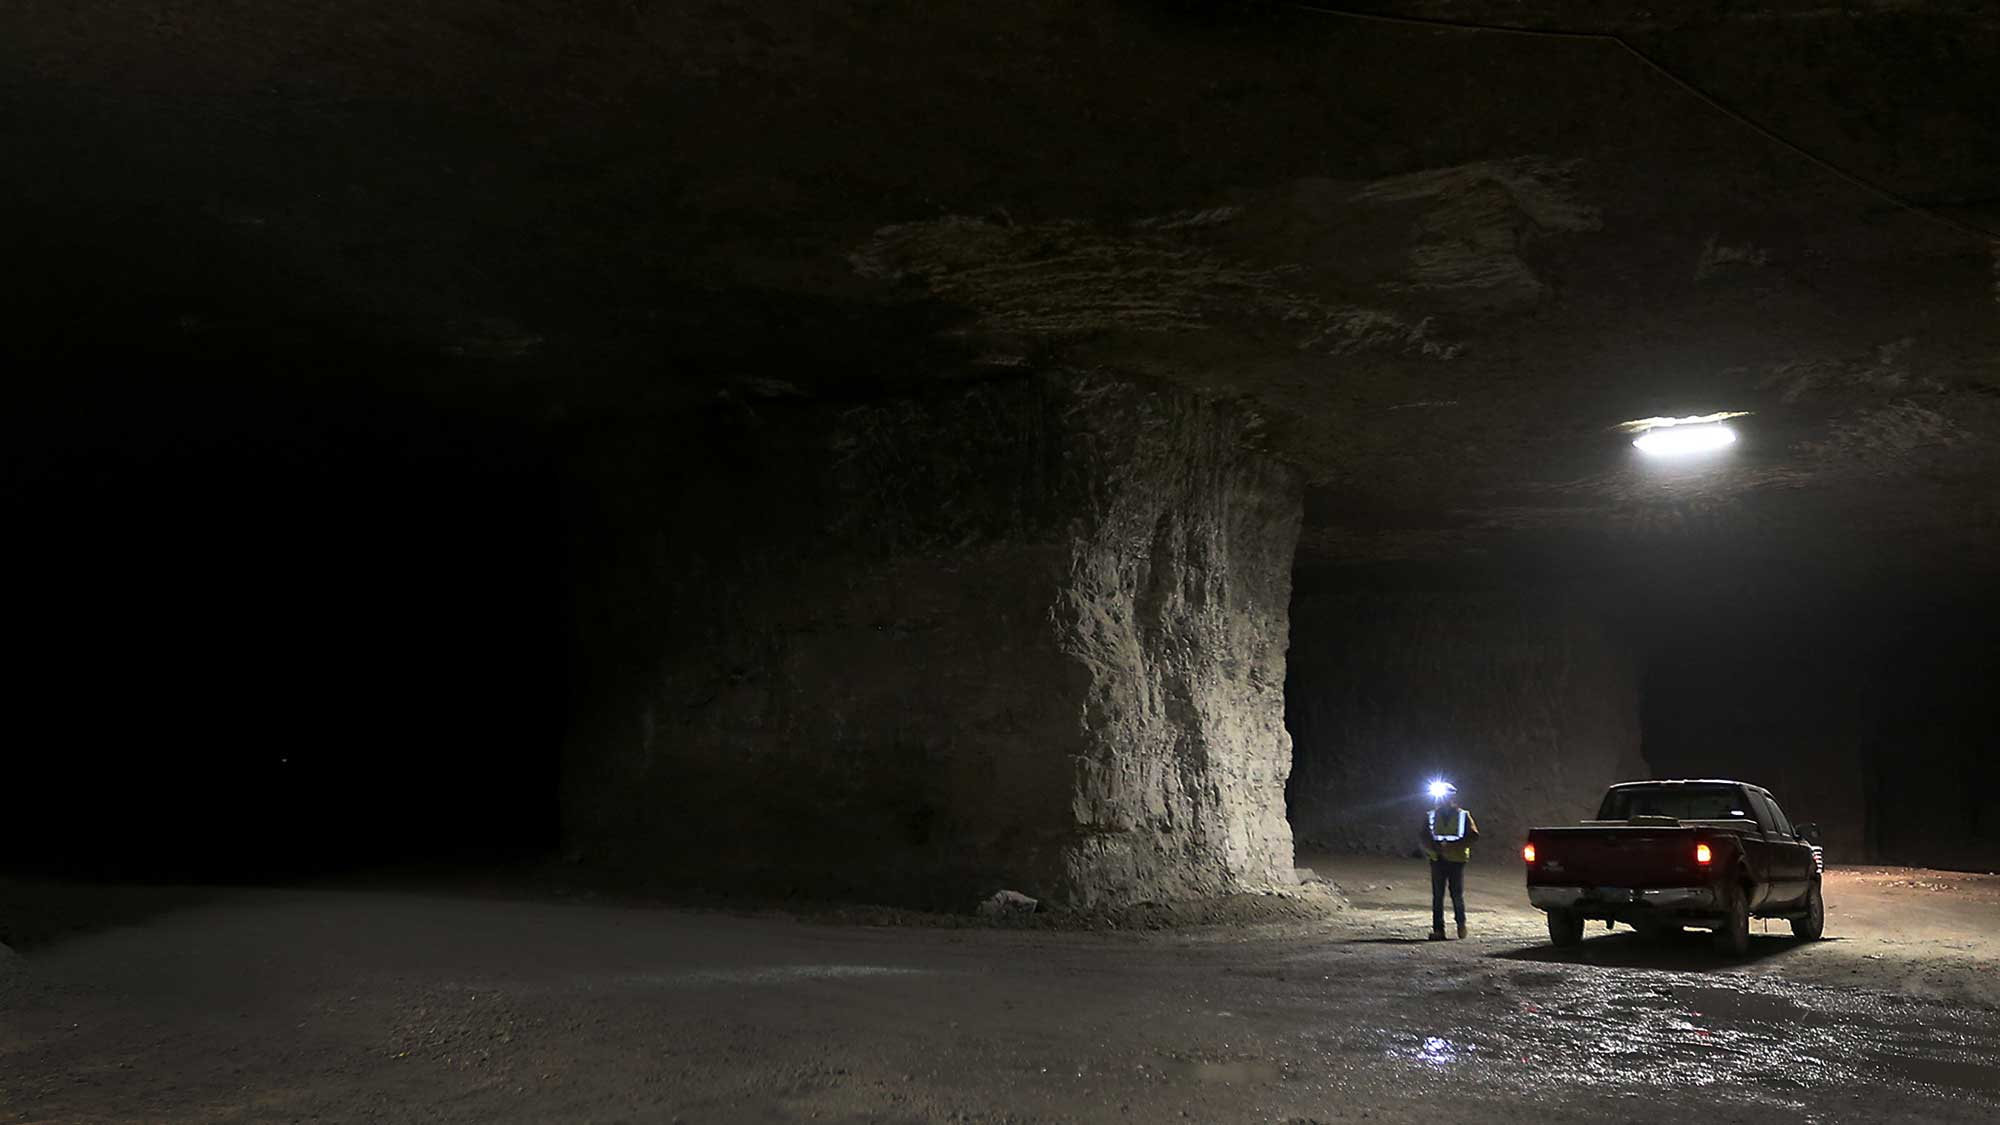 Foreman surveying progress in underground mine standing with headlamp on next to his truck